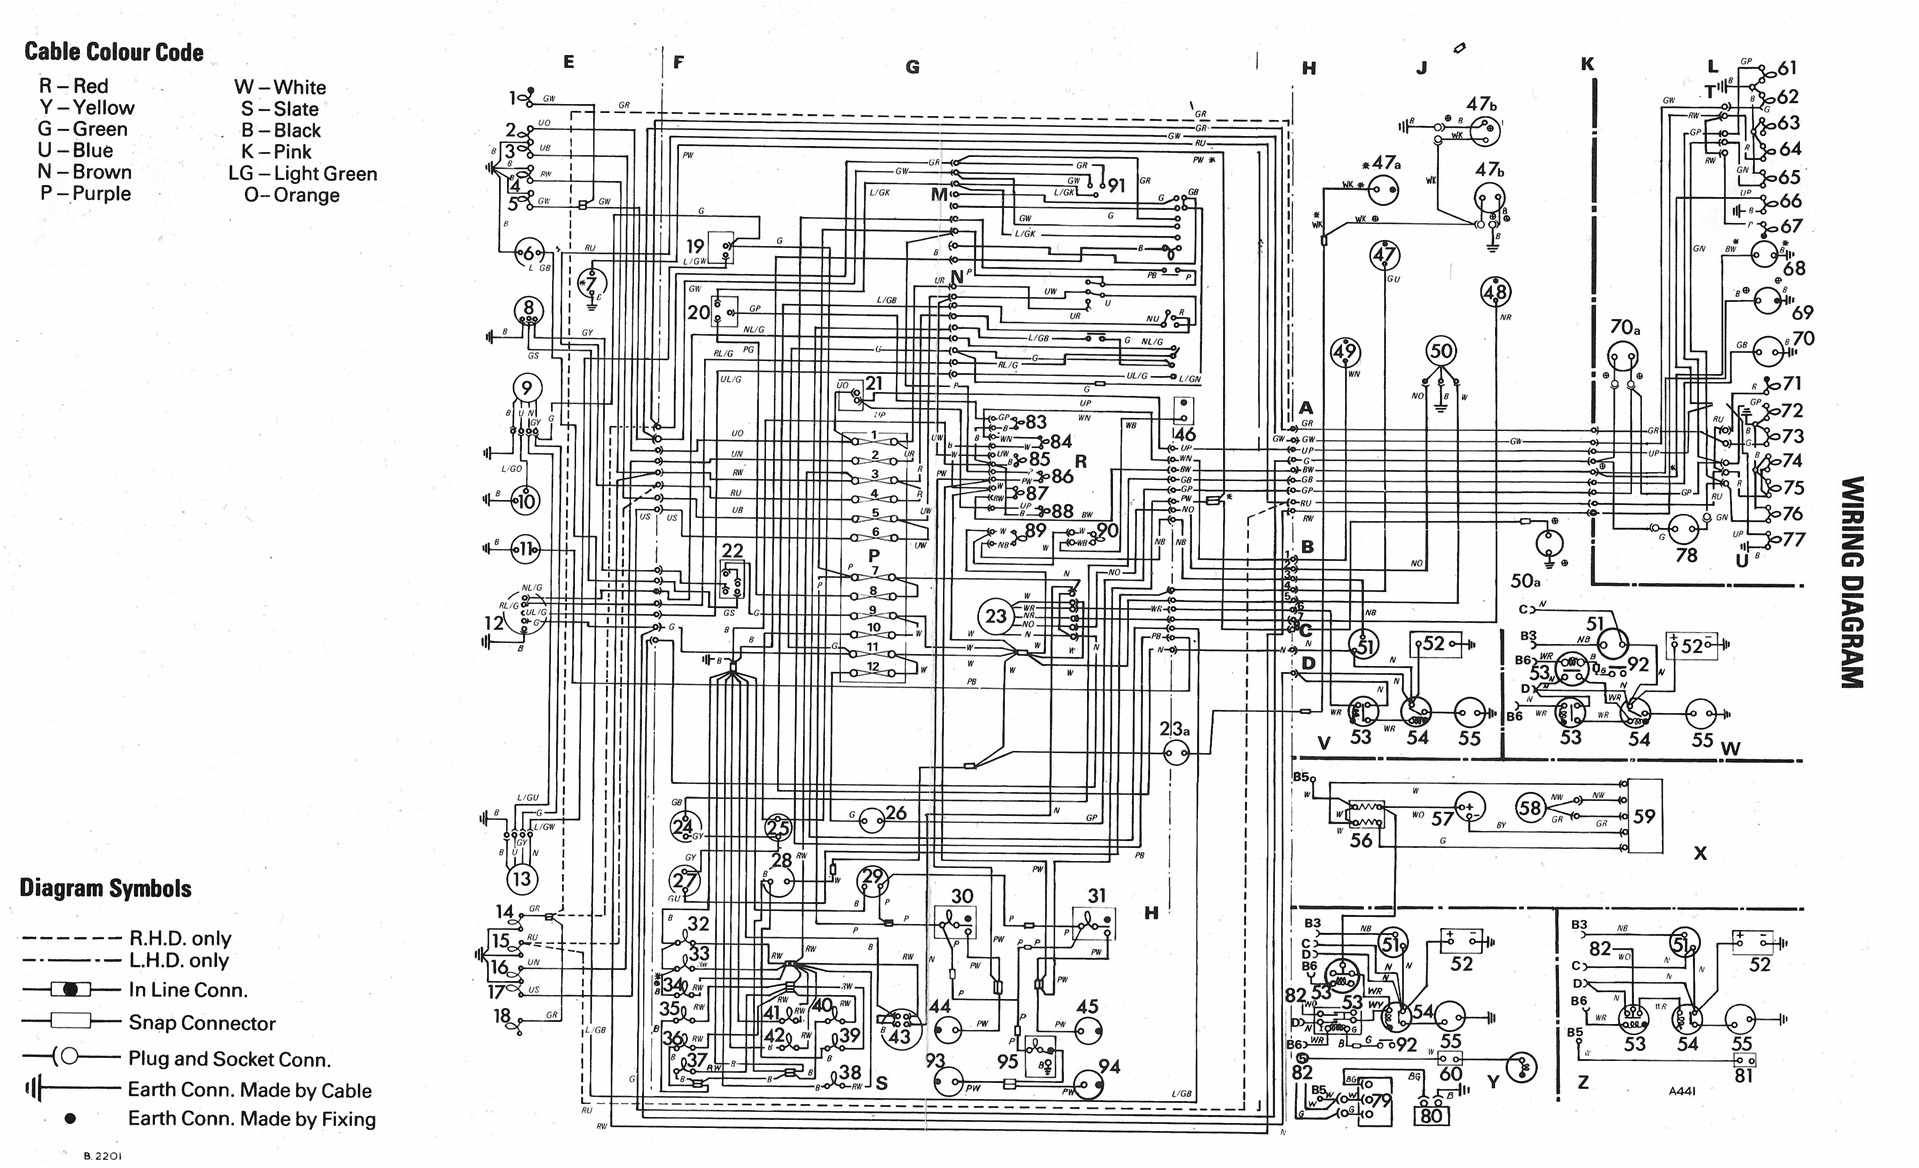 Vw Golf Mk1 Wiring Diagram Farmall 140 12 Volt Electrical Of Volkswagen Projekt Att Testa